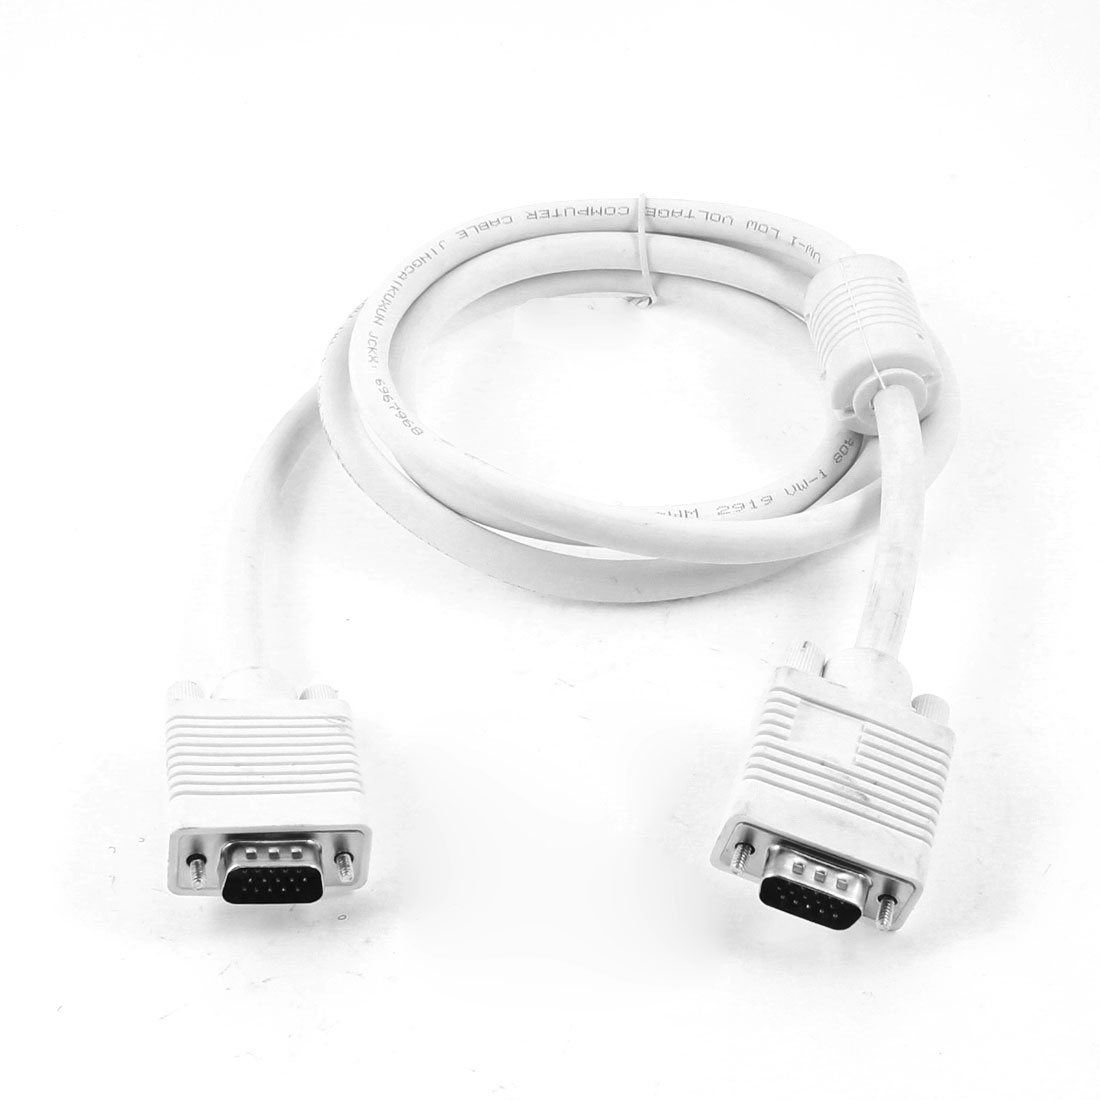 VGA Extension Adapter Cable Lead 15 Pin Male to Male White 145cm for LCD Monitor